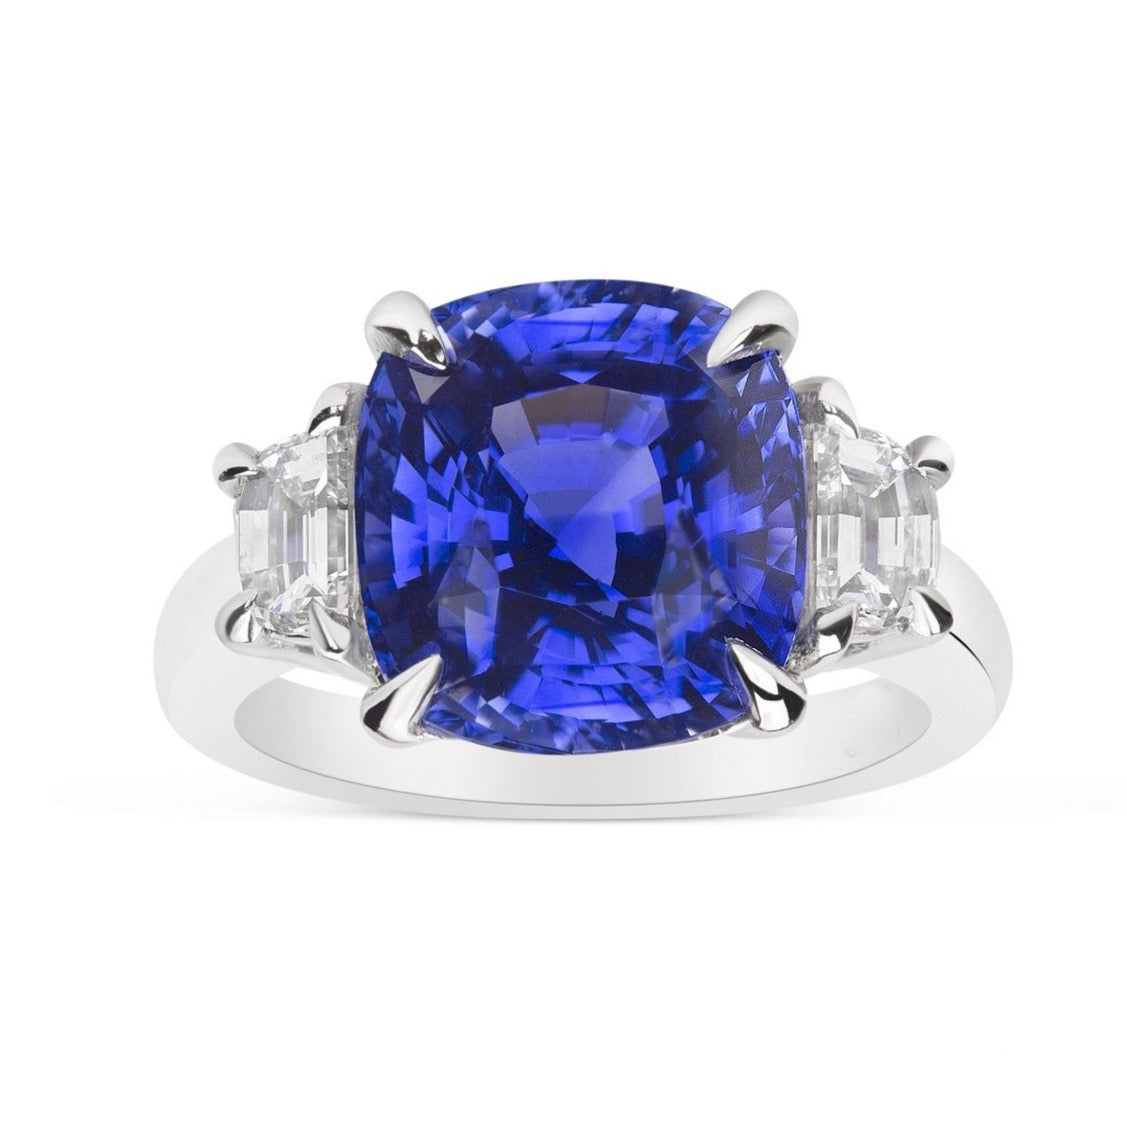 AF Jewelers One of Kind Ring with Cushion-cut Madagascar Blue Sapphire 7.56 Ct. and Diamonds, Platinum.